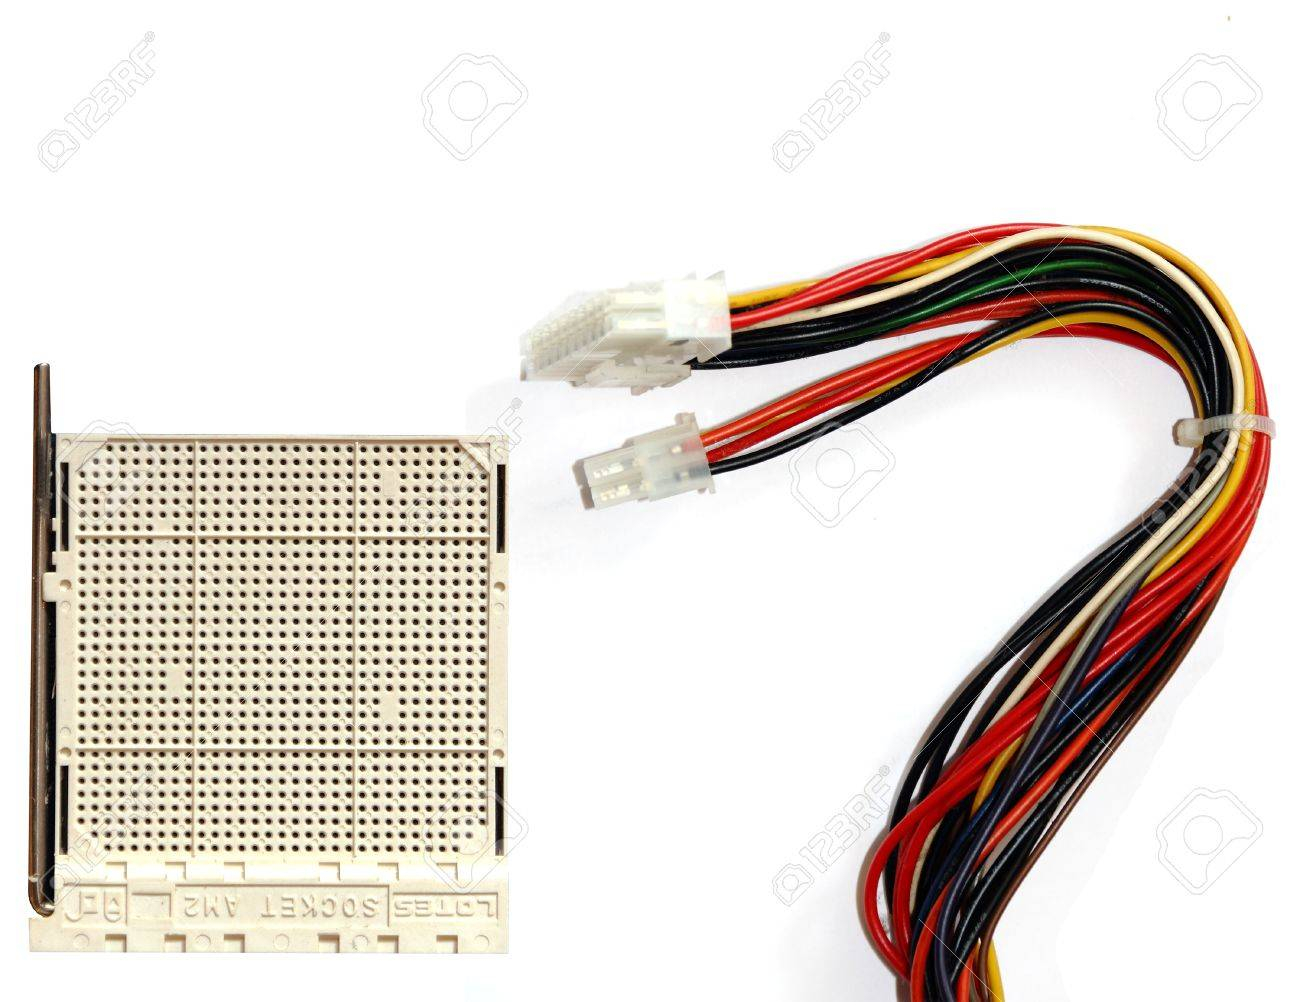 CPU socket and old computer cables Stock Photo - 9223382